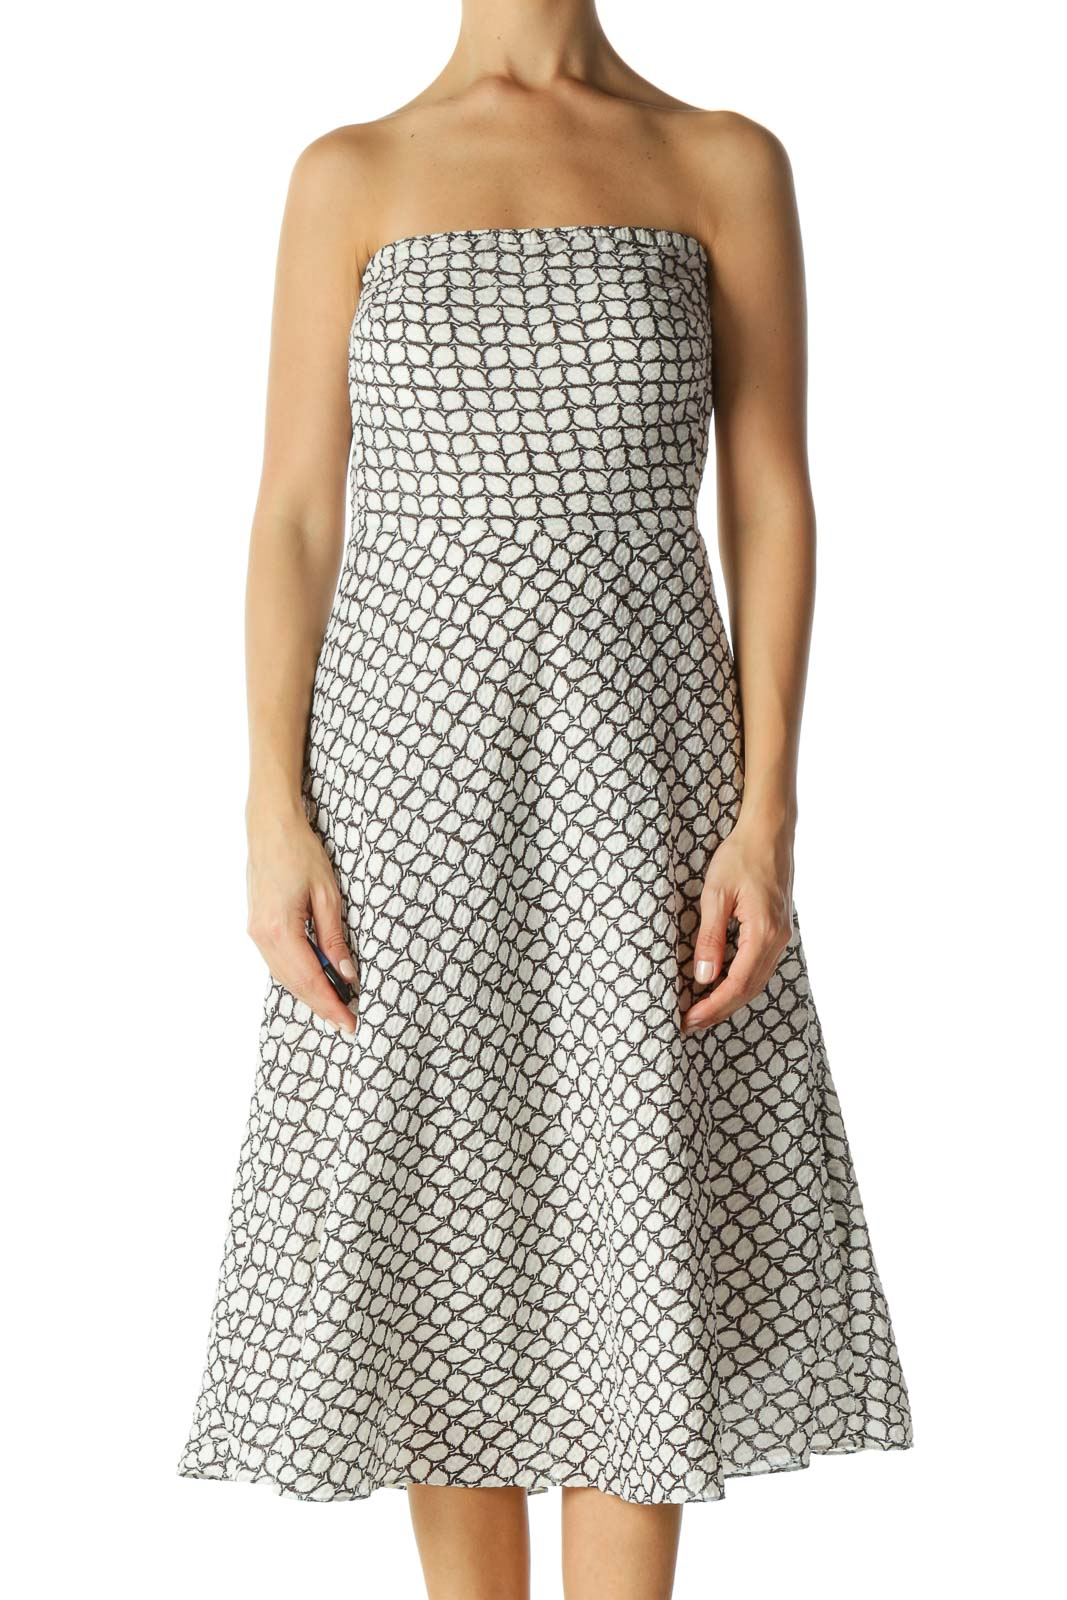 White & Brown Patterned Strapless Dress